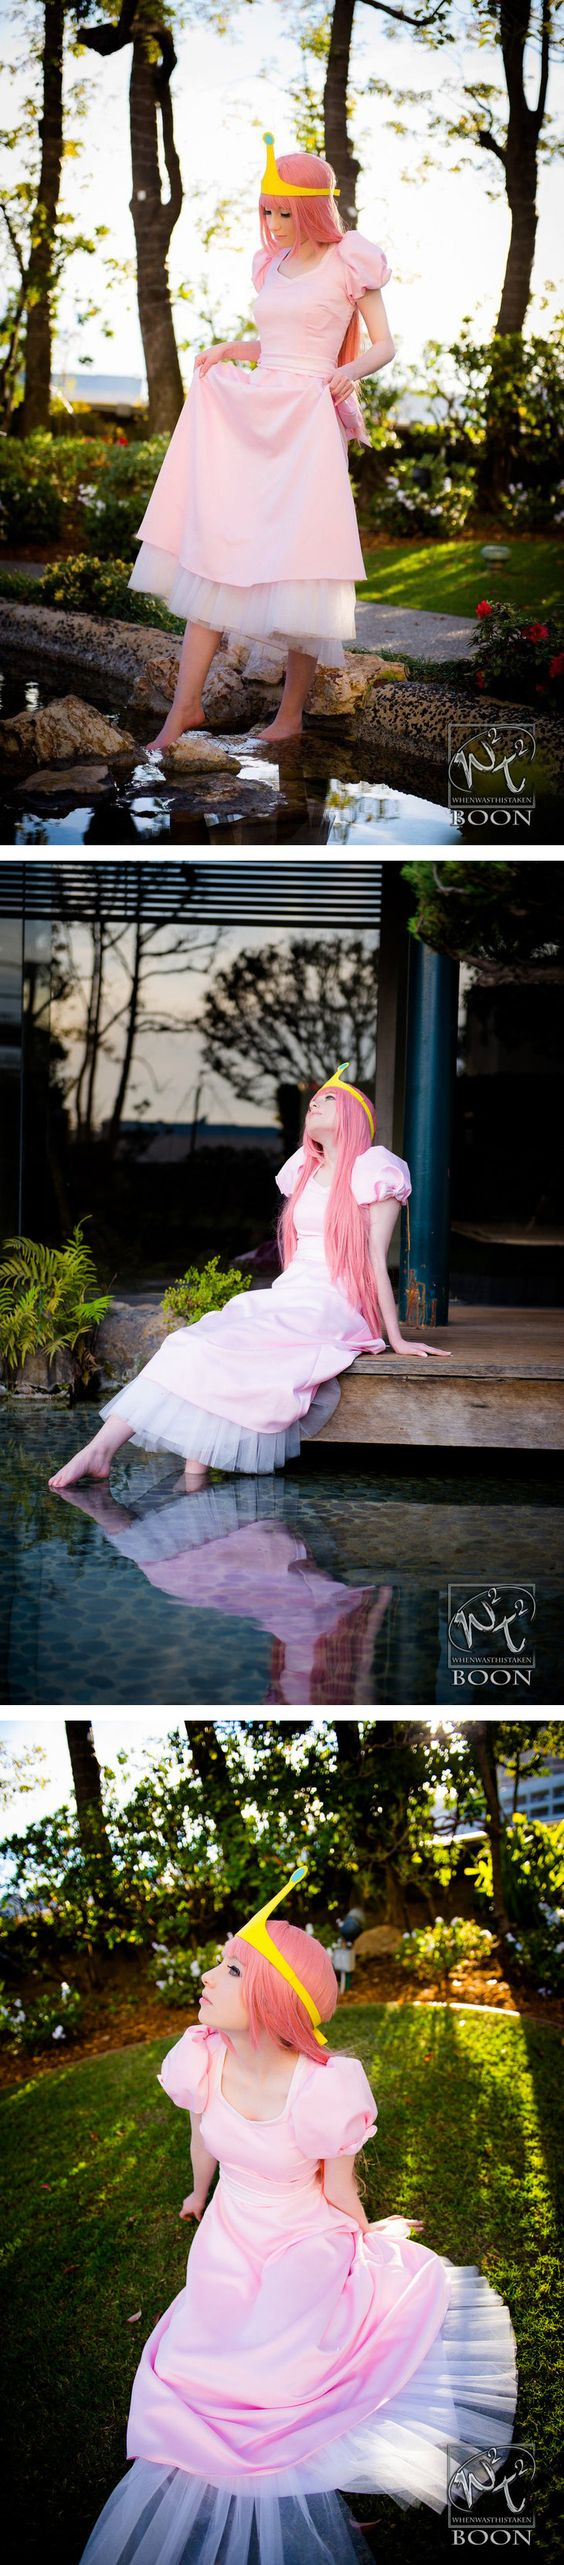 Princess Bubblegum Cosplay - Adventure Time: